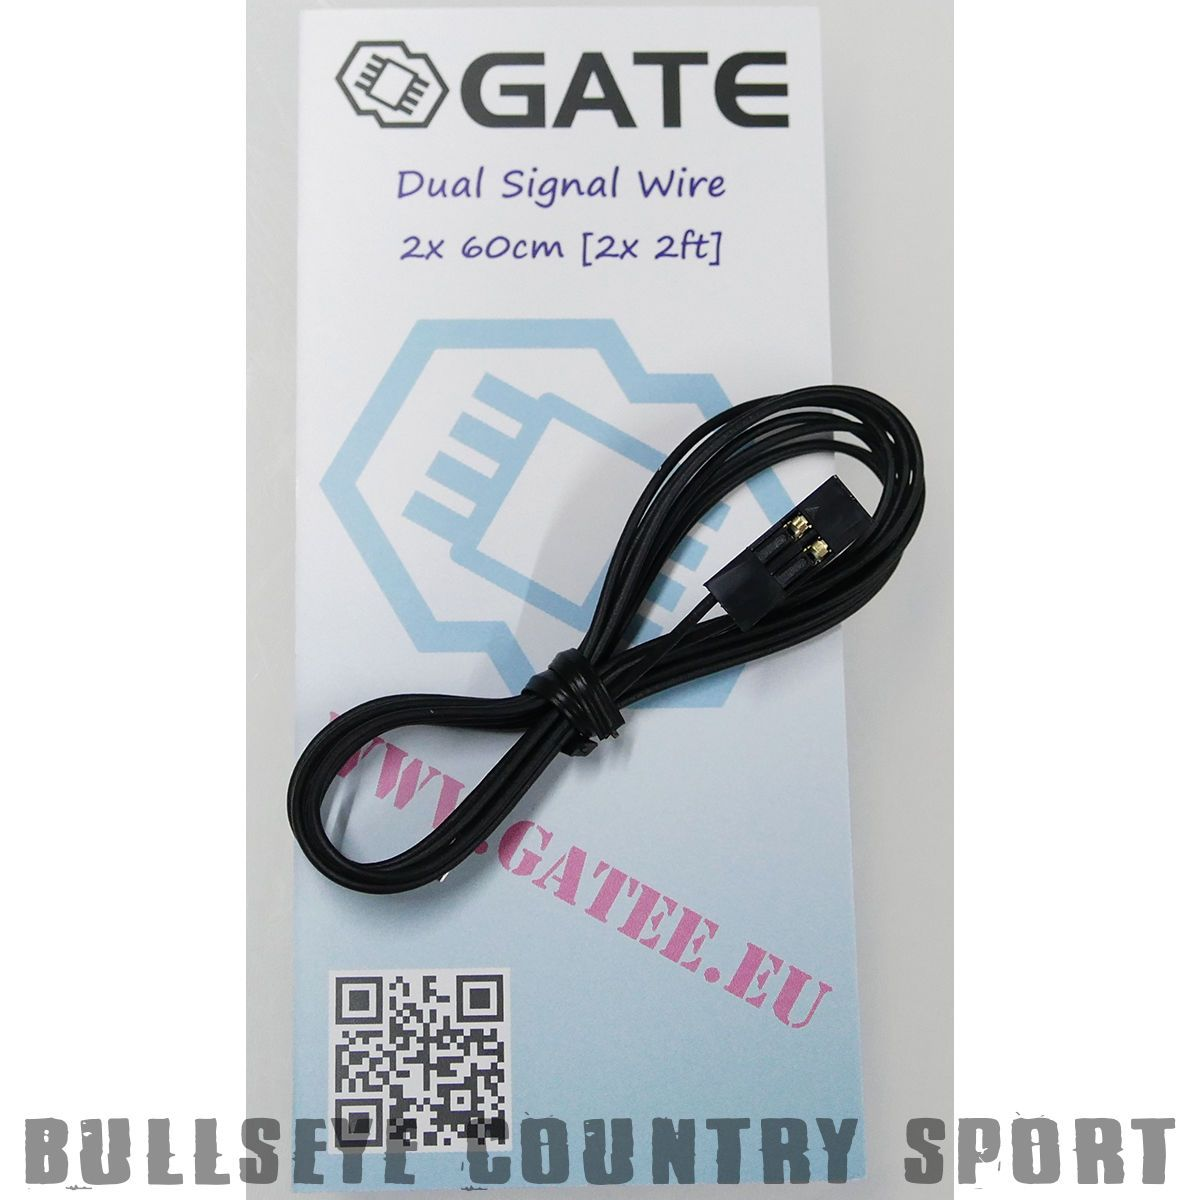 GATE Dual Signal Pulse Mosfet Wire